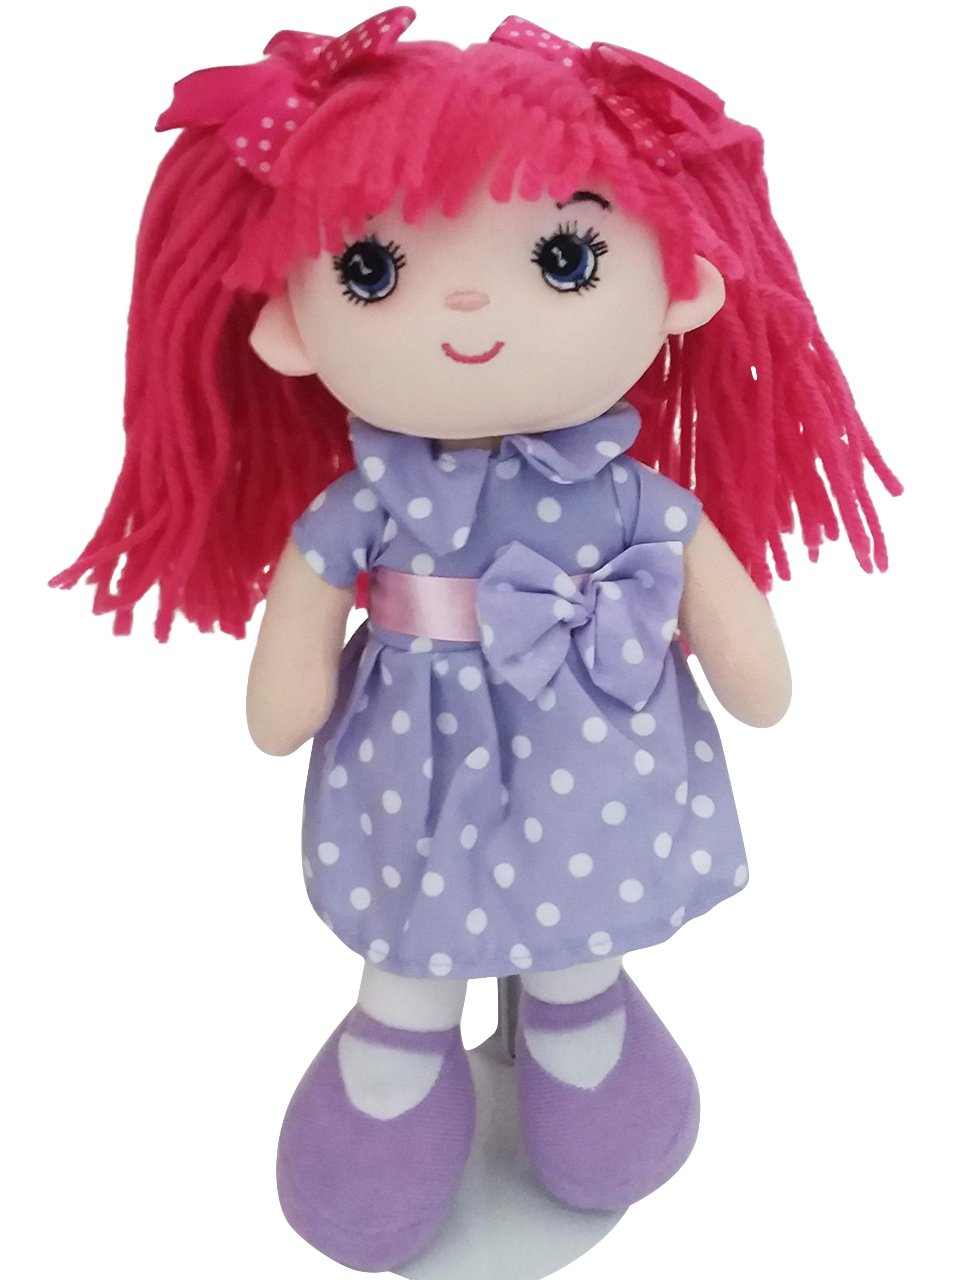 red hair baby doll